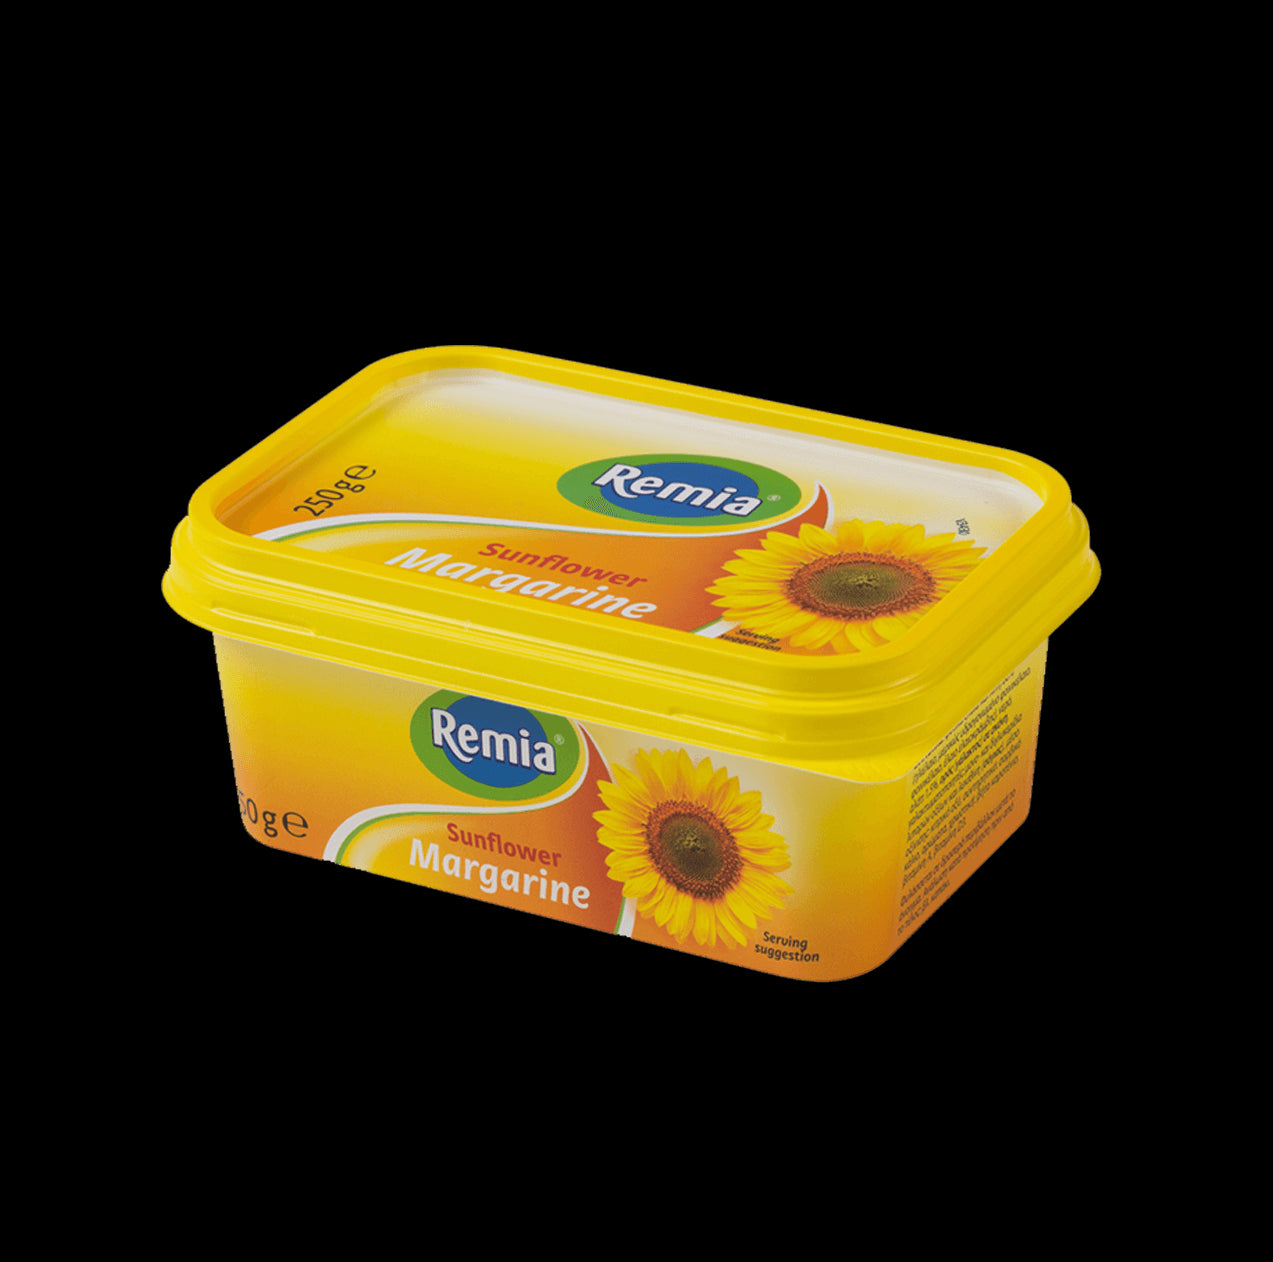 sey>Remia/Sunflower Margarine, 250g